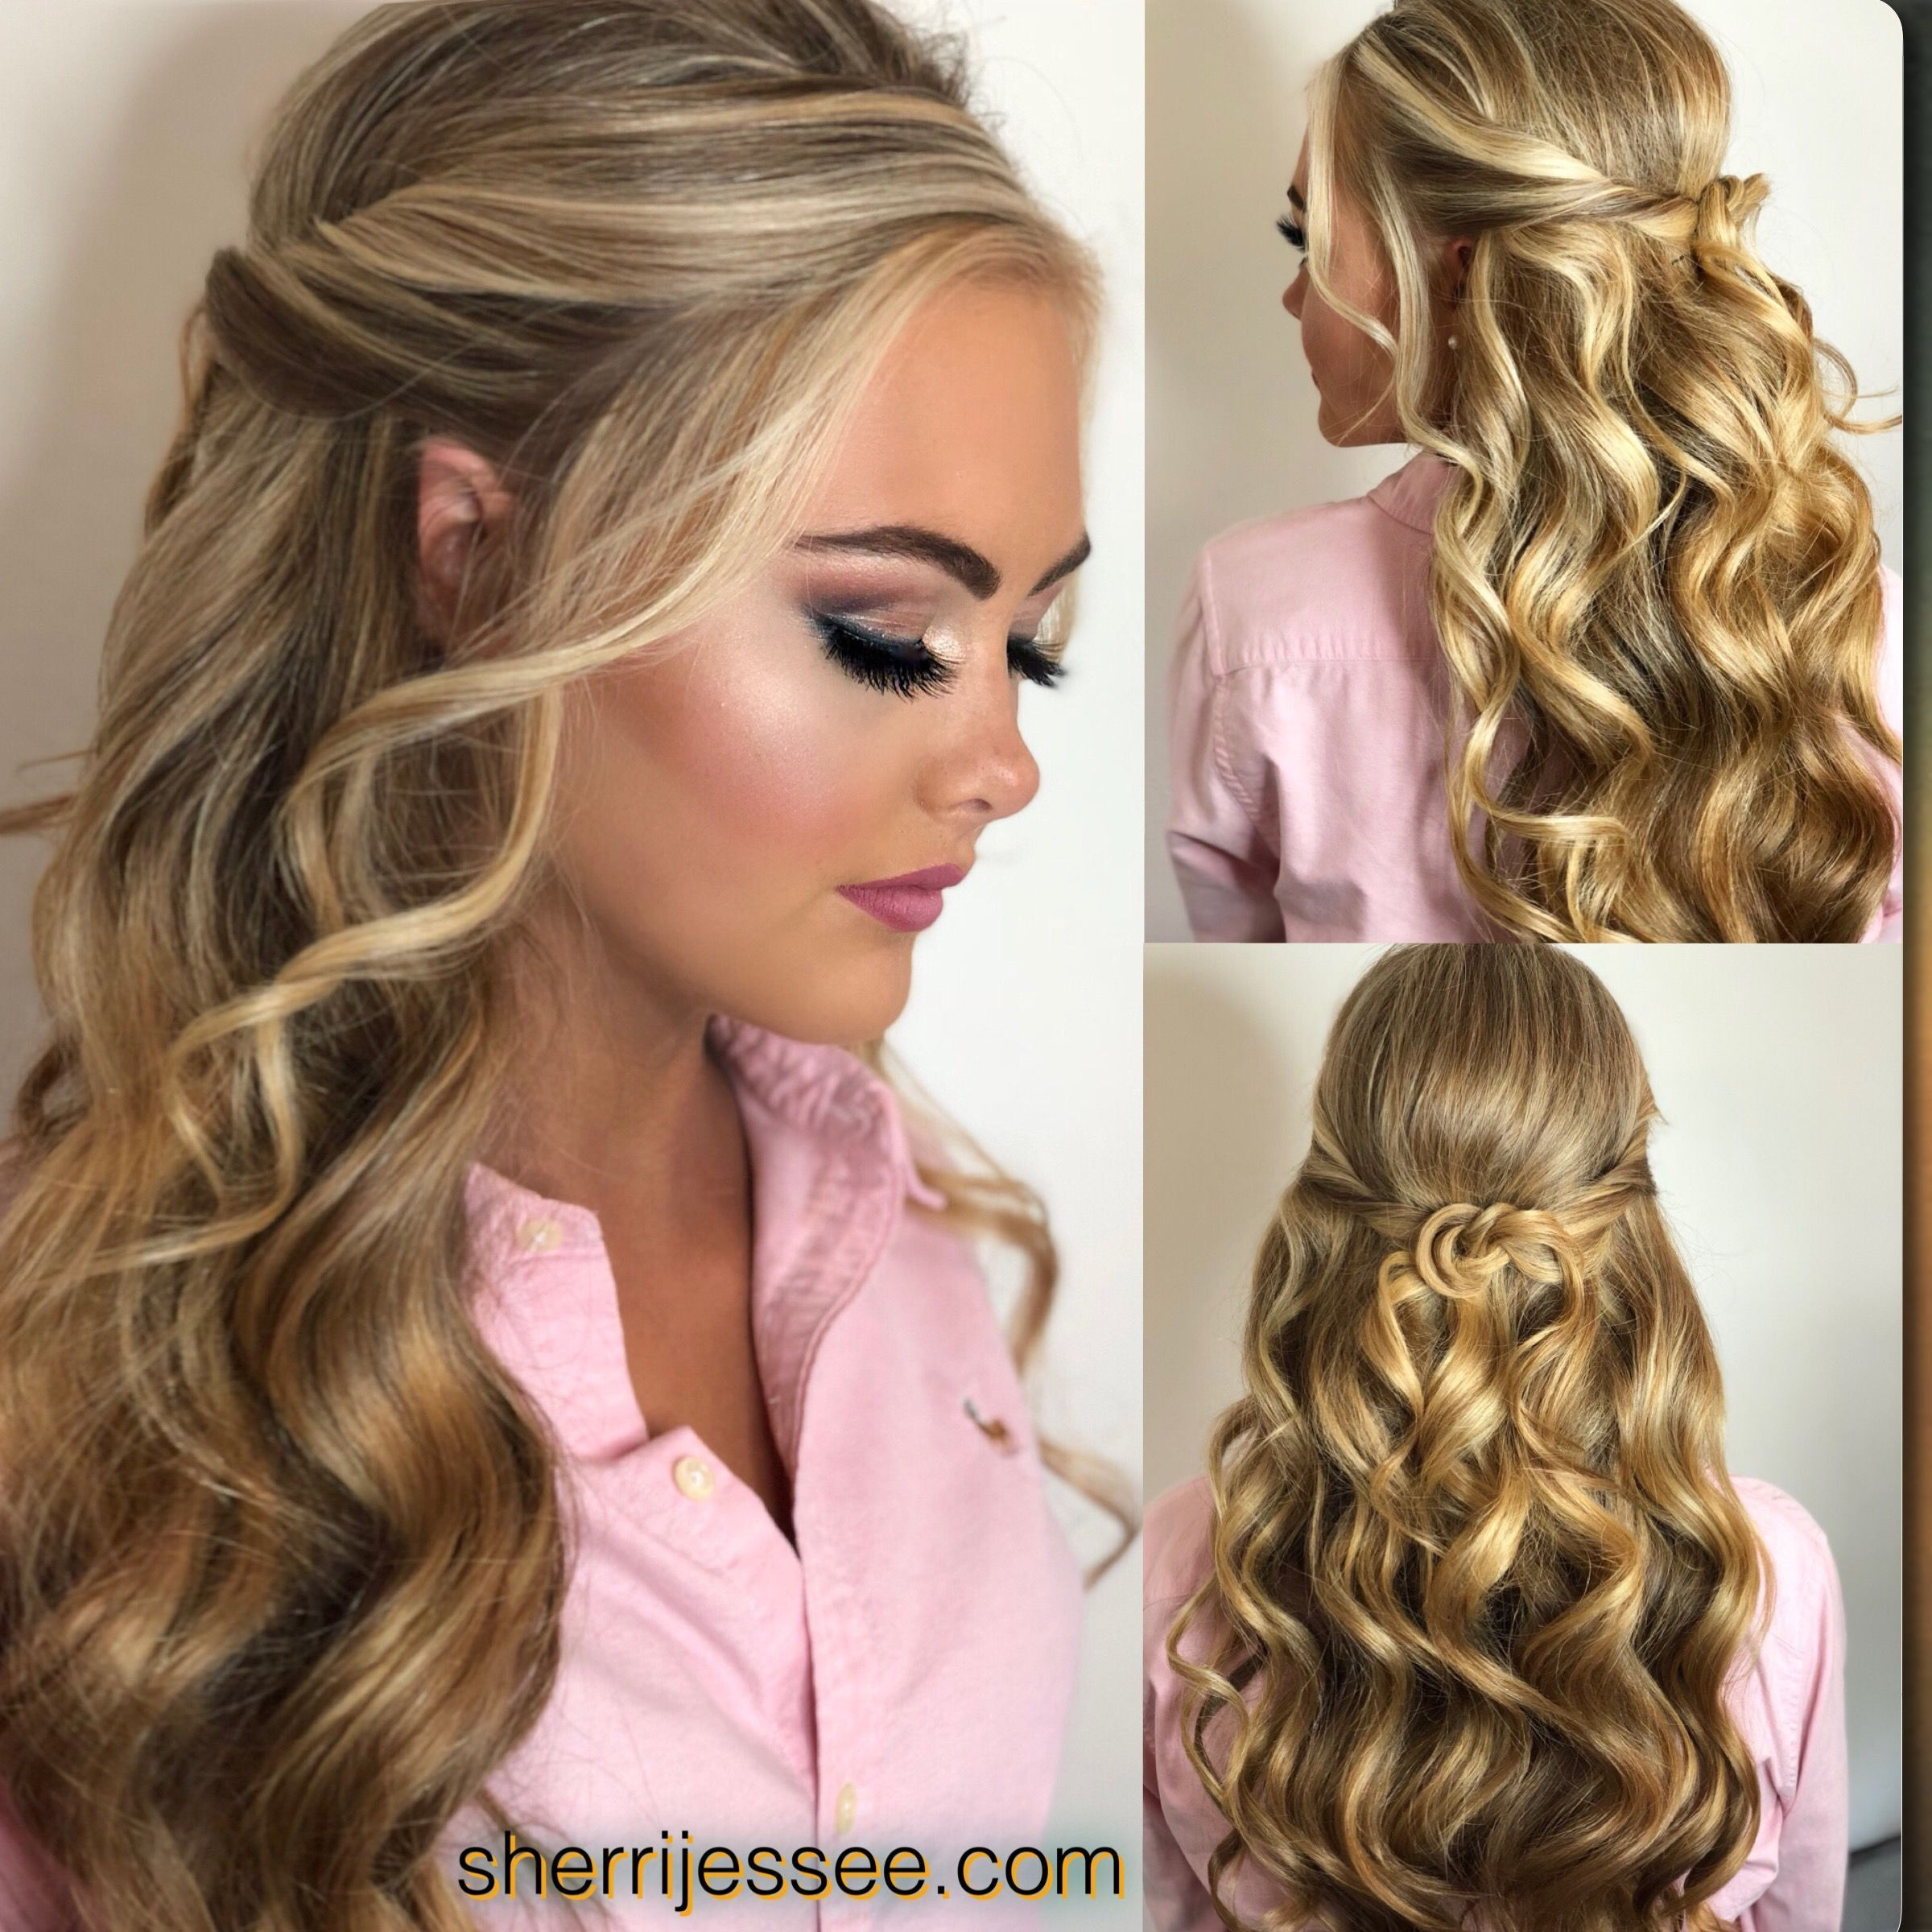 Hairstyles Prom Hairstyles For Long Hair Half Up Half Down Most Prom Hair Down Pageant Hair Prom Hairstyles For Long Hair